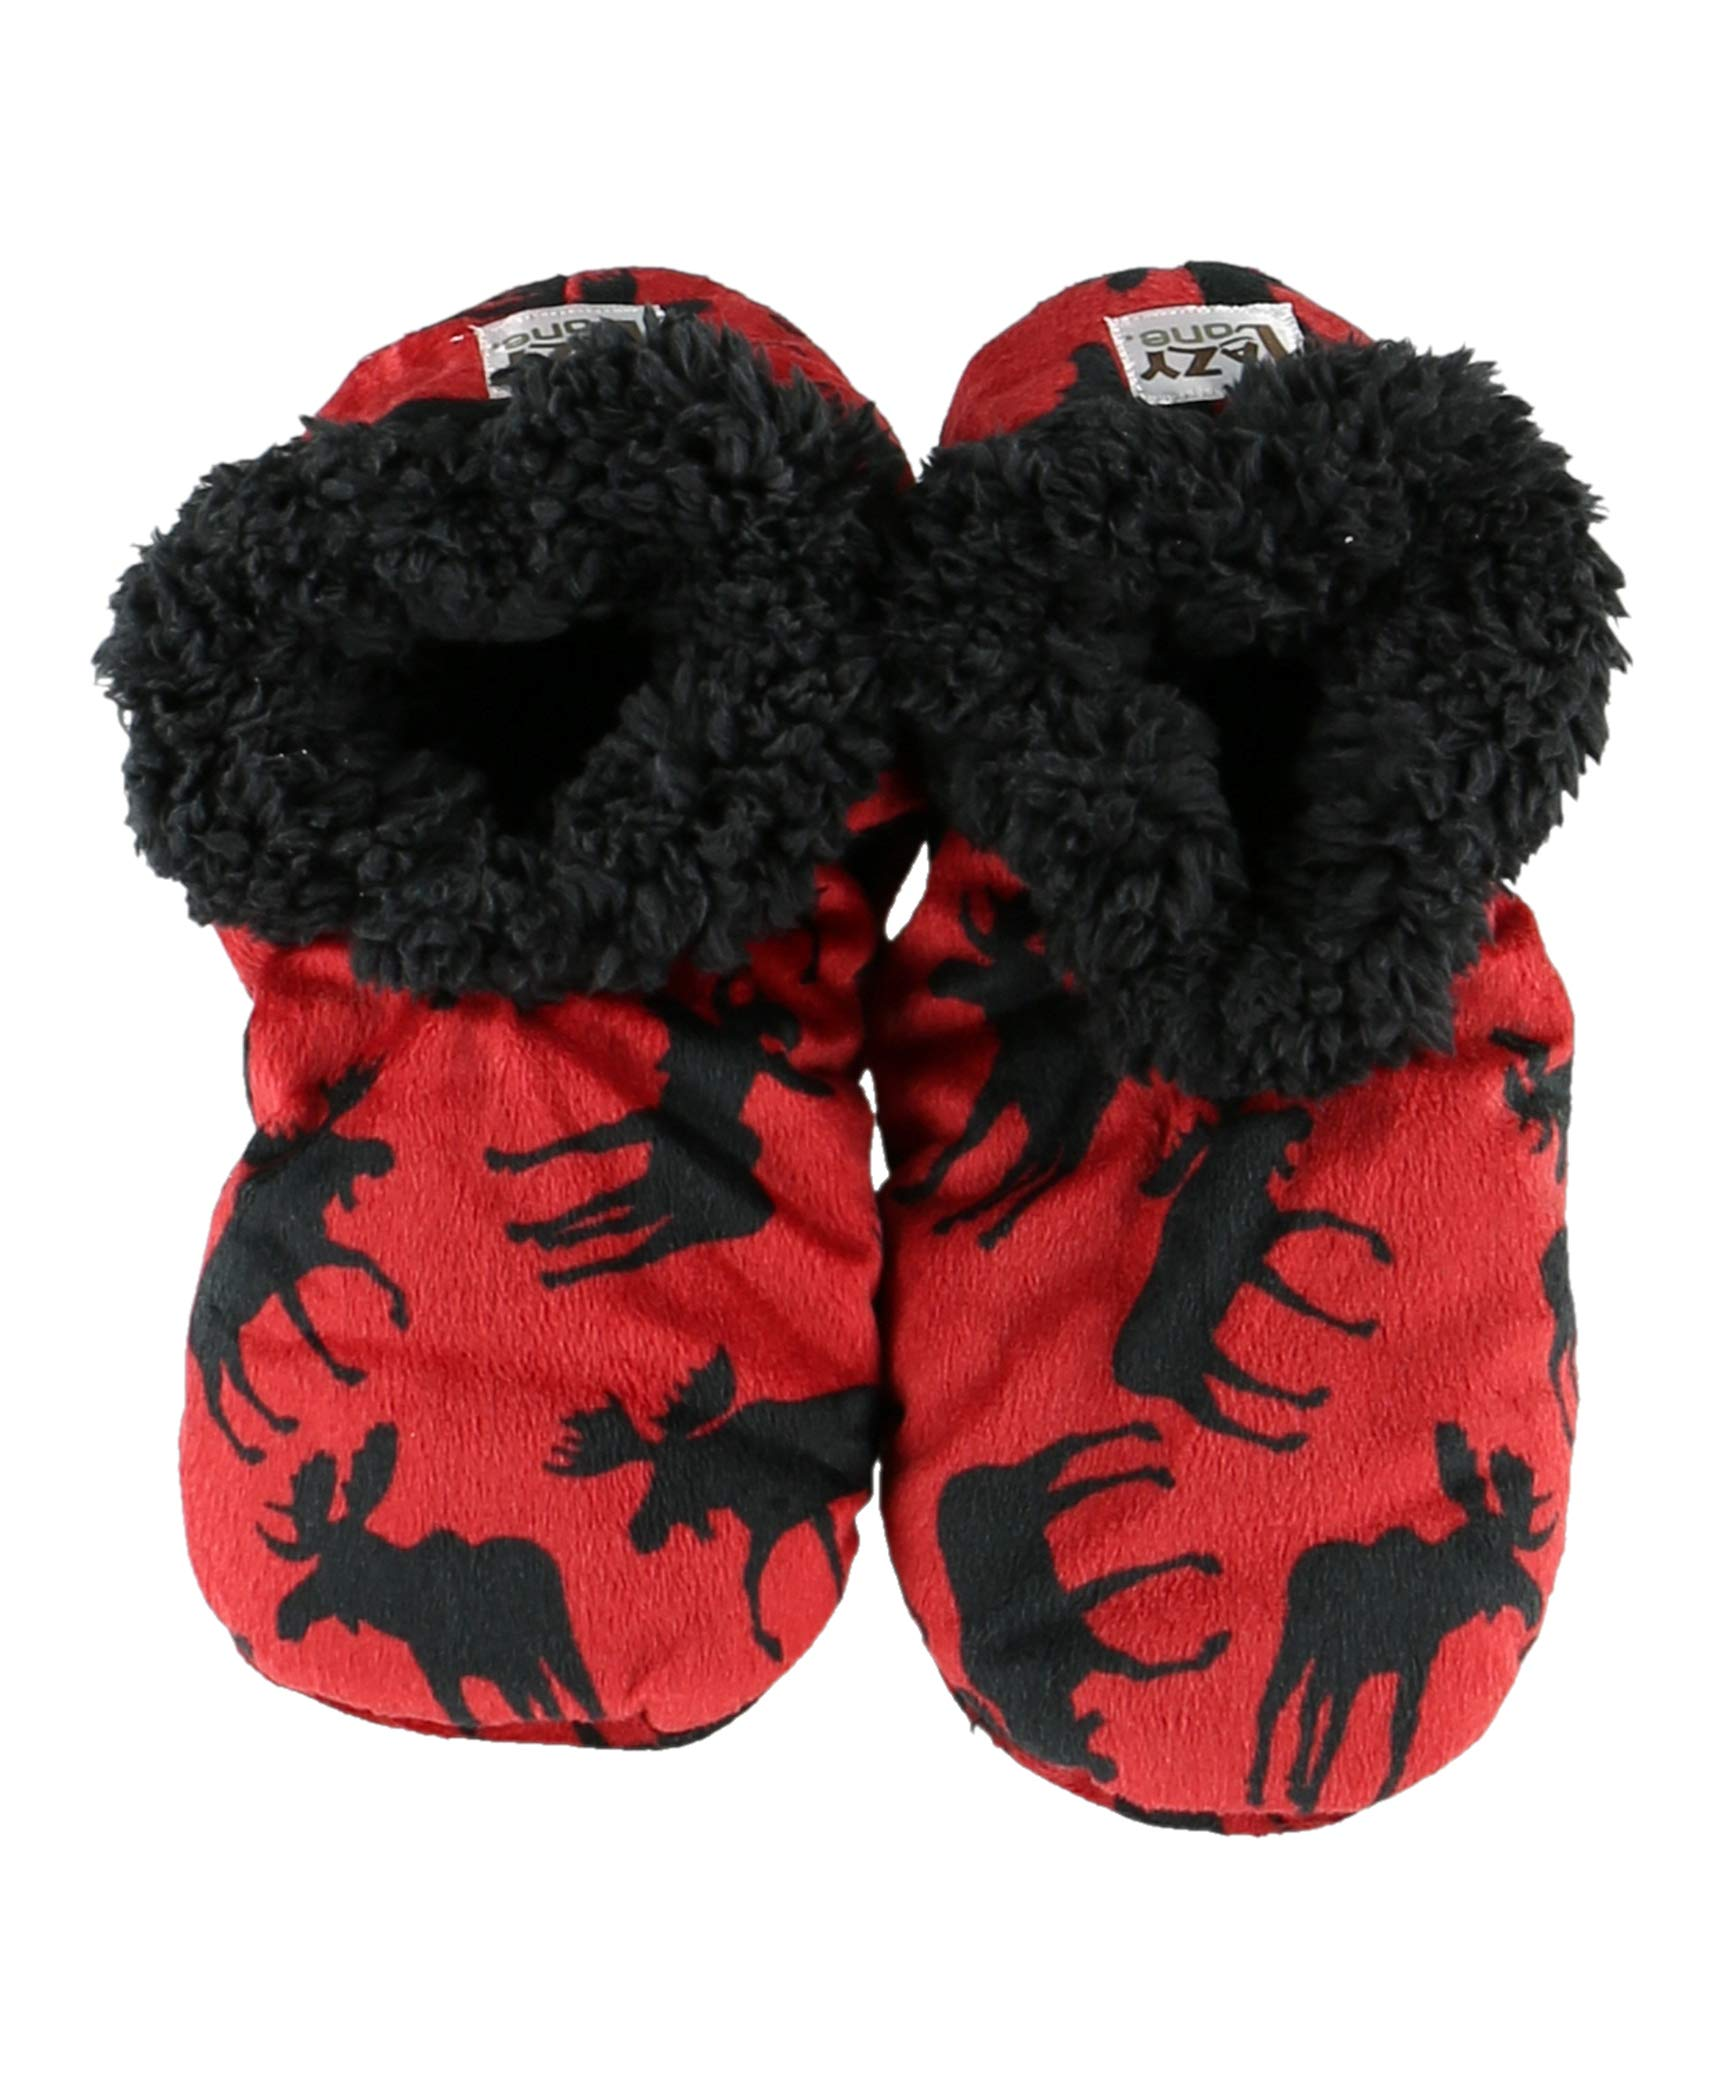 Classic Moose Womens Plush Fuzzy Feet Slippers by LazyOne | Ladies Soft Fuzzy House Slippers (S/M)